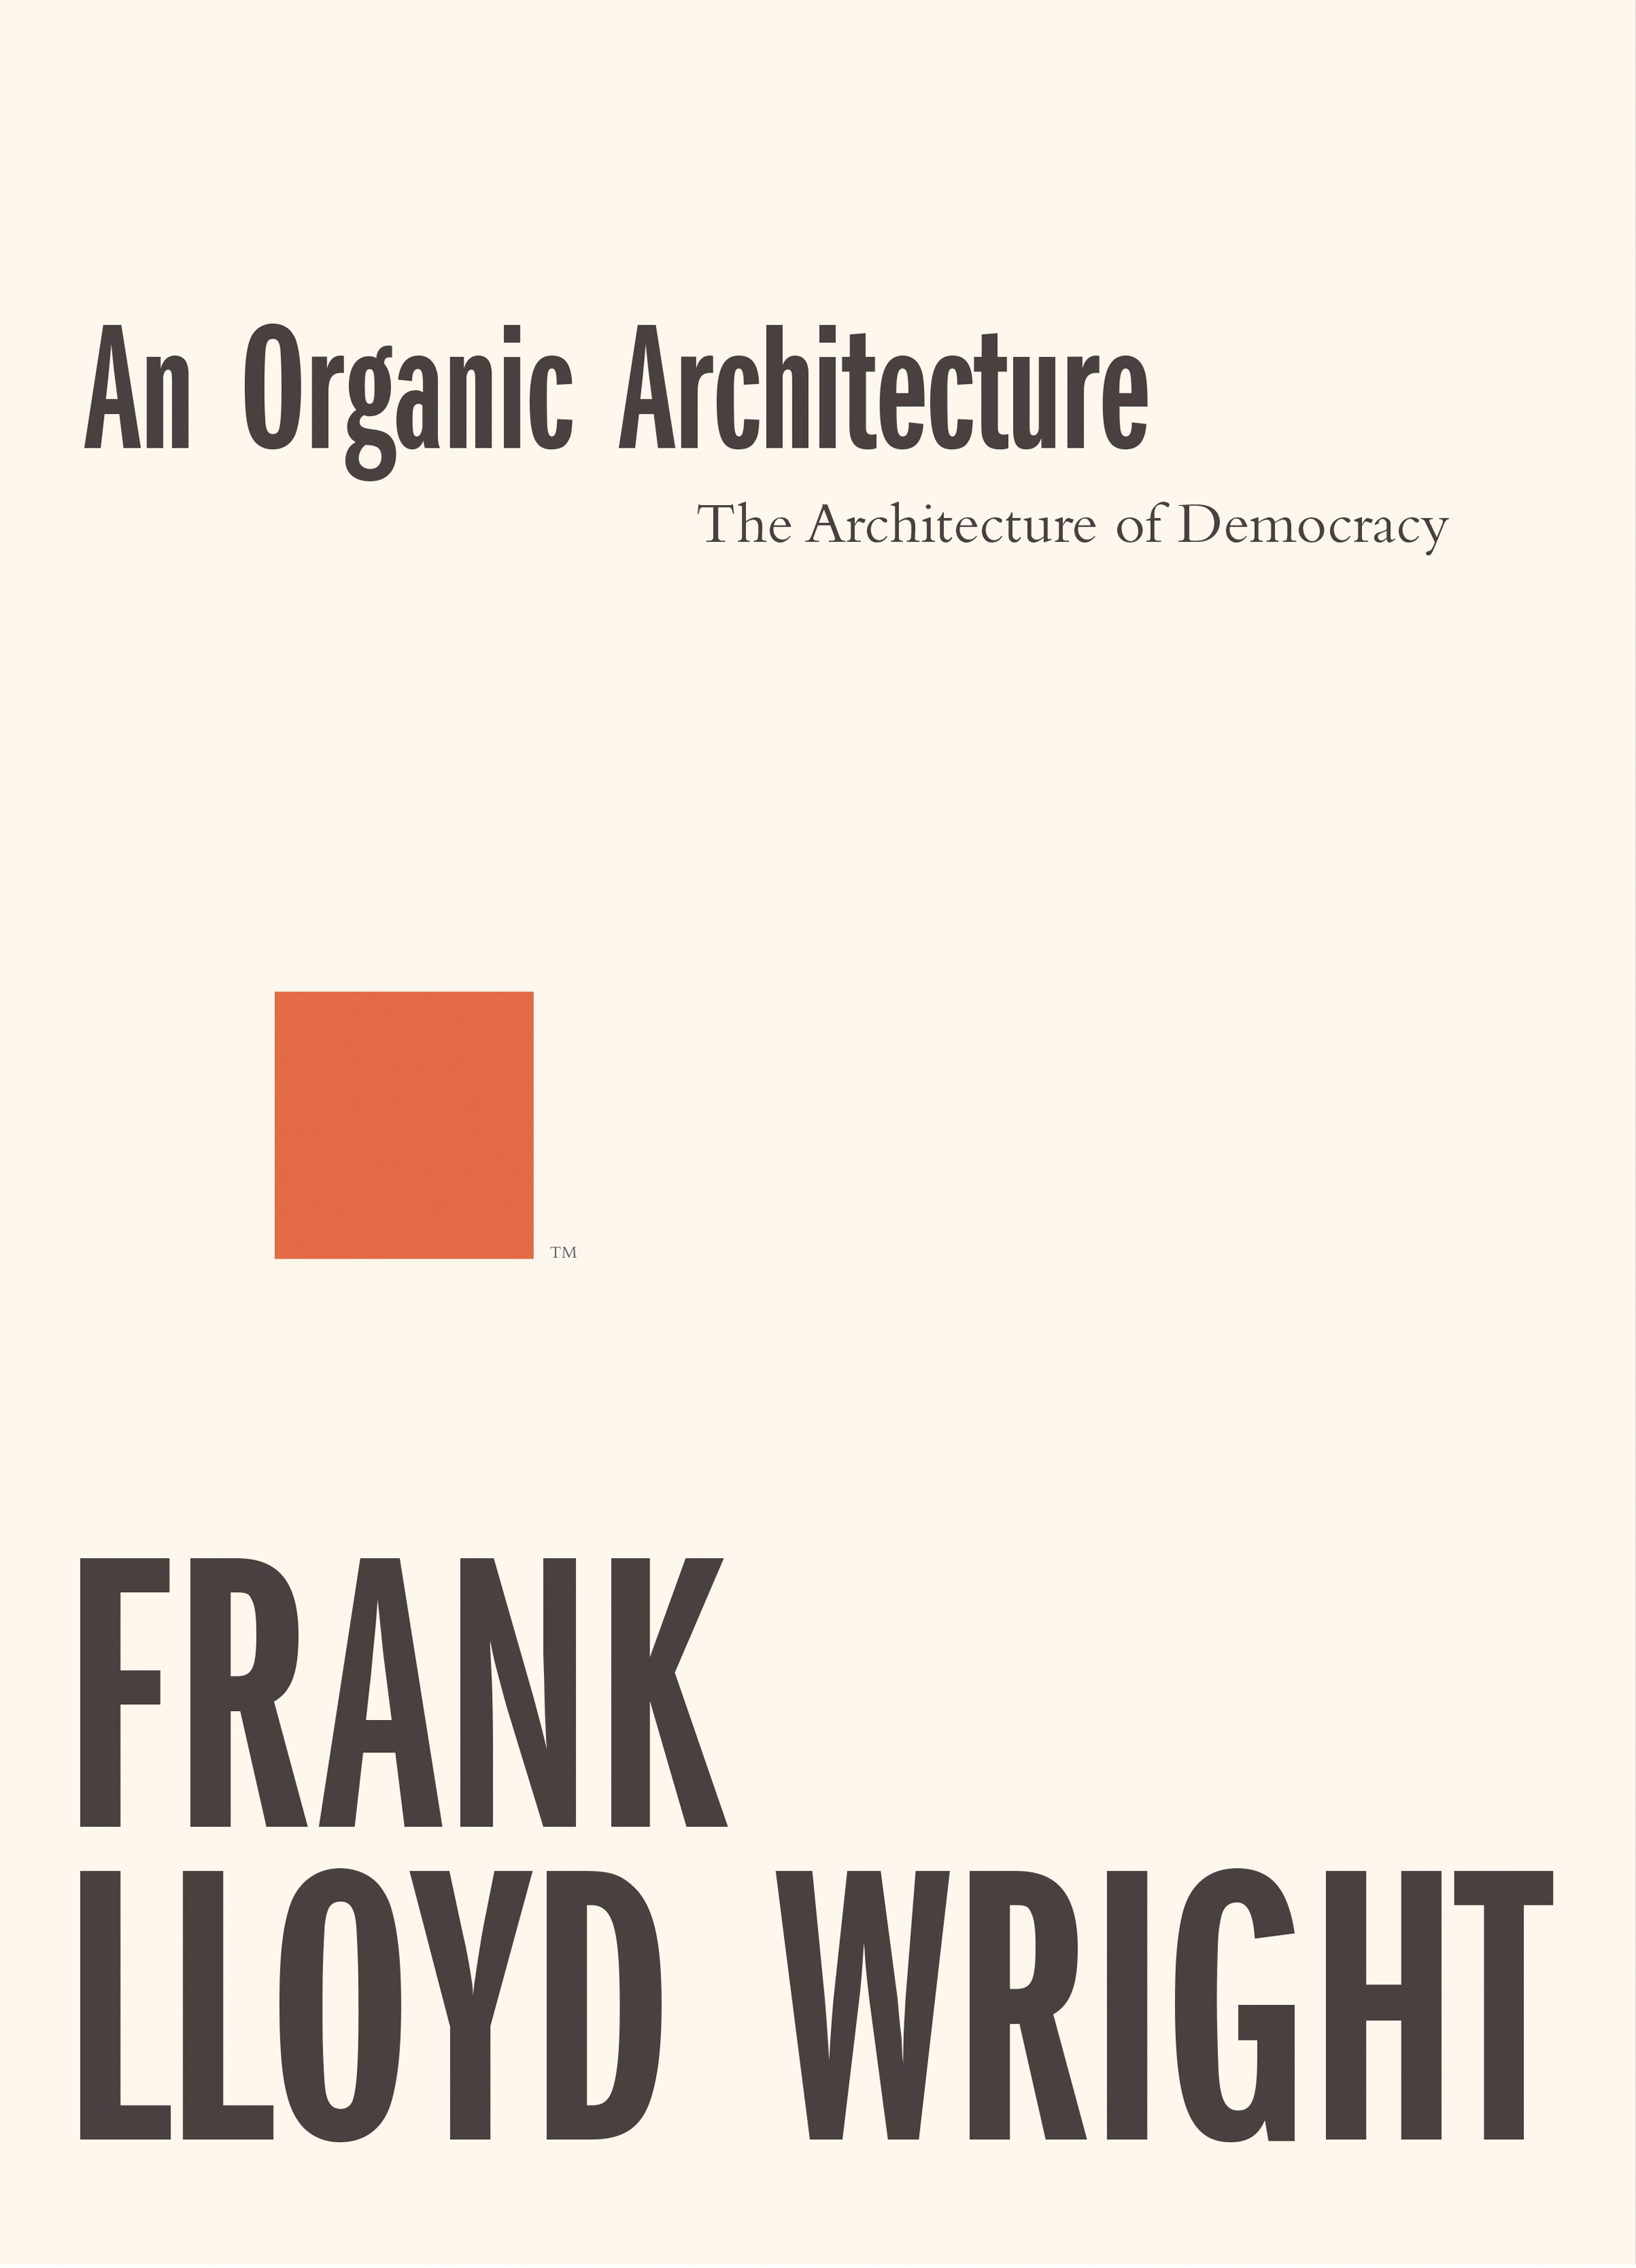 An Organic Architecture Frank Lloyd Wright